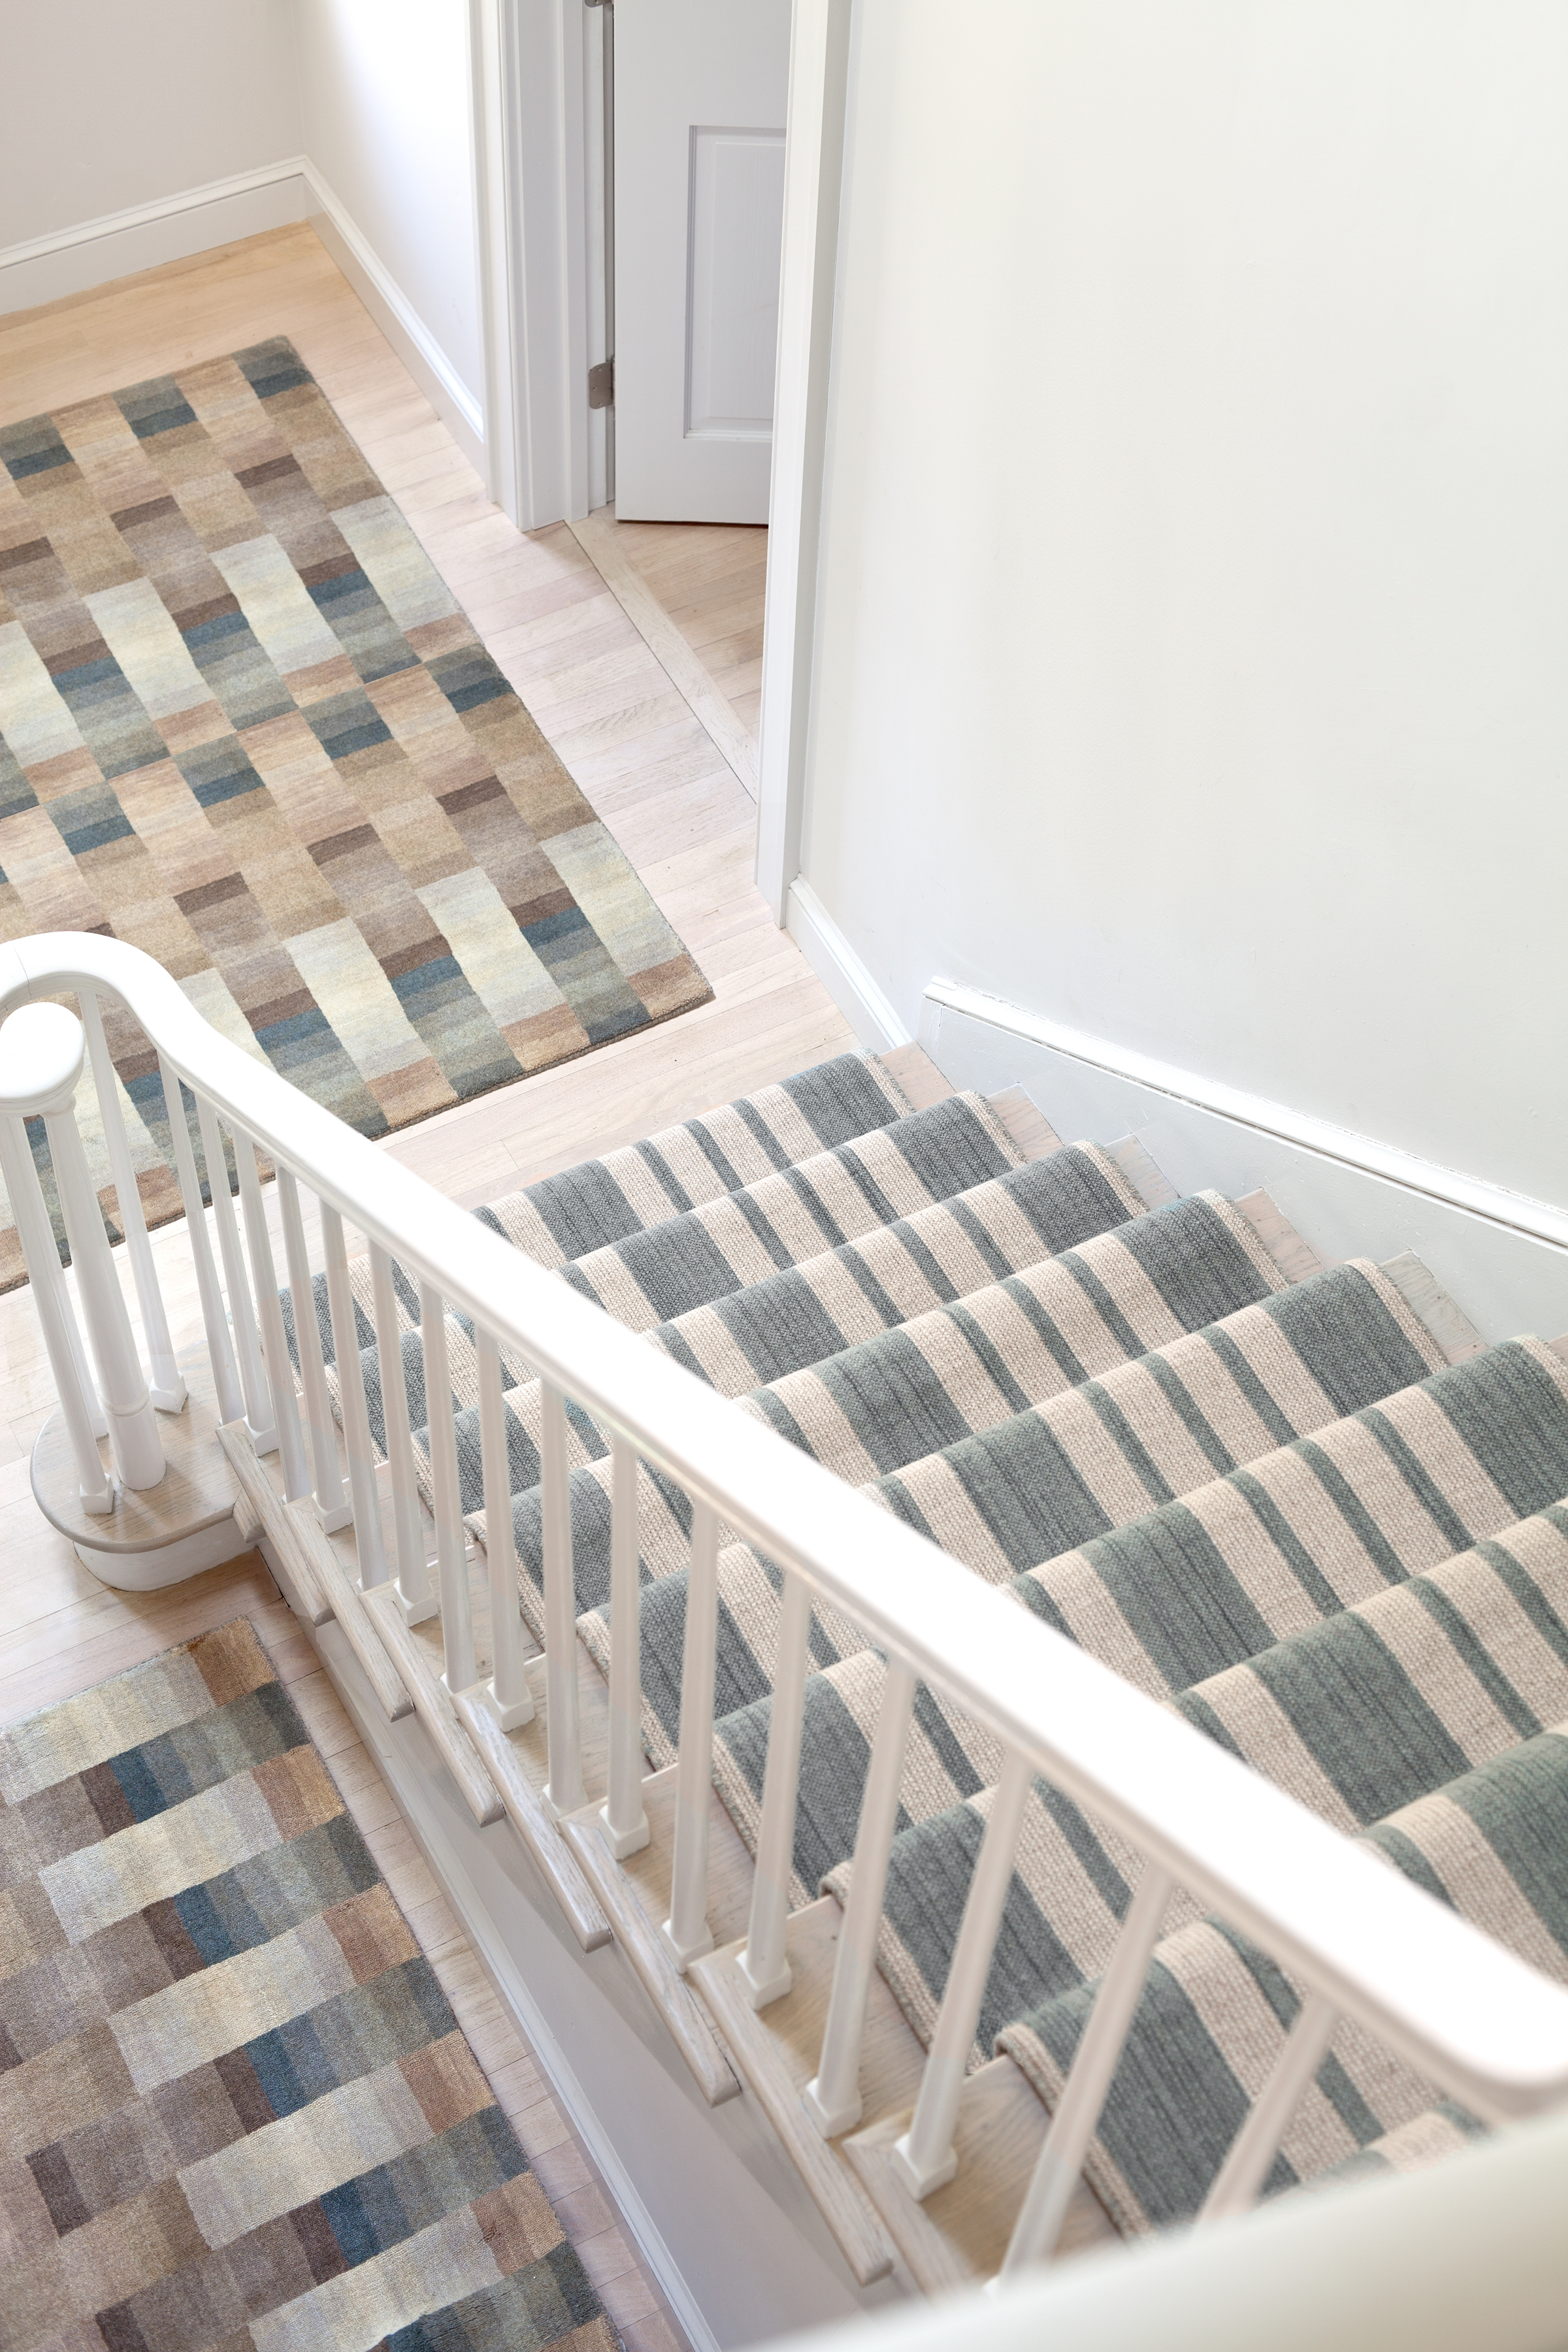 How To Choose A Runner Rug For A Stair Installation Intended For Rugs For Staircases (Image 10 of 15)